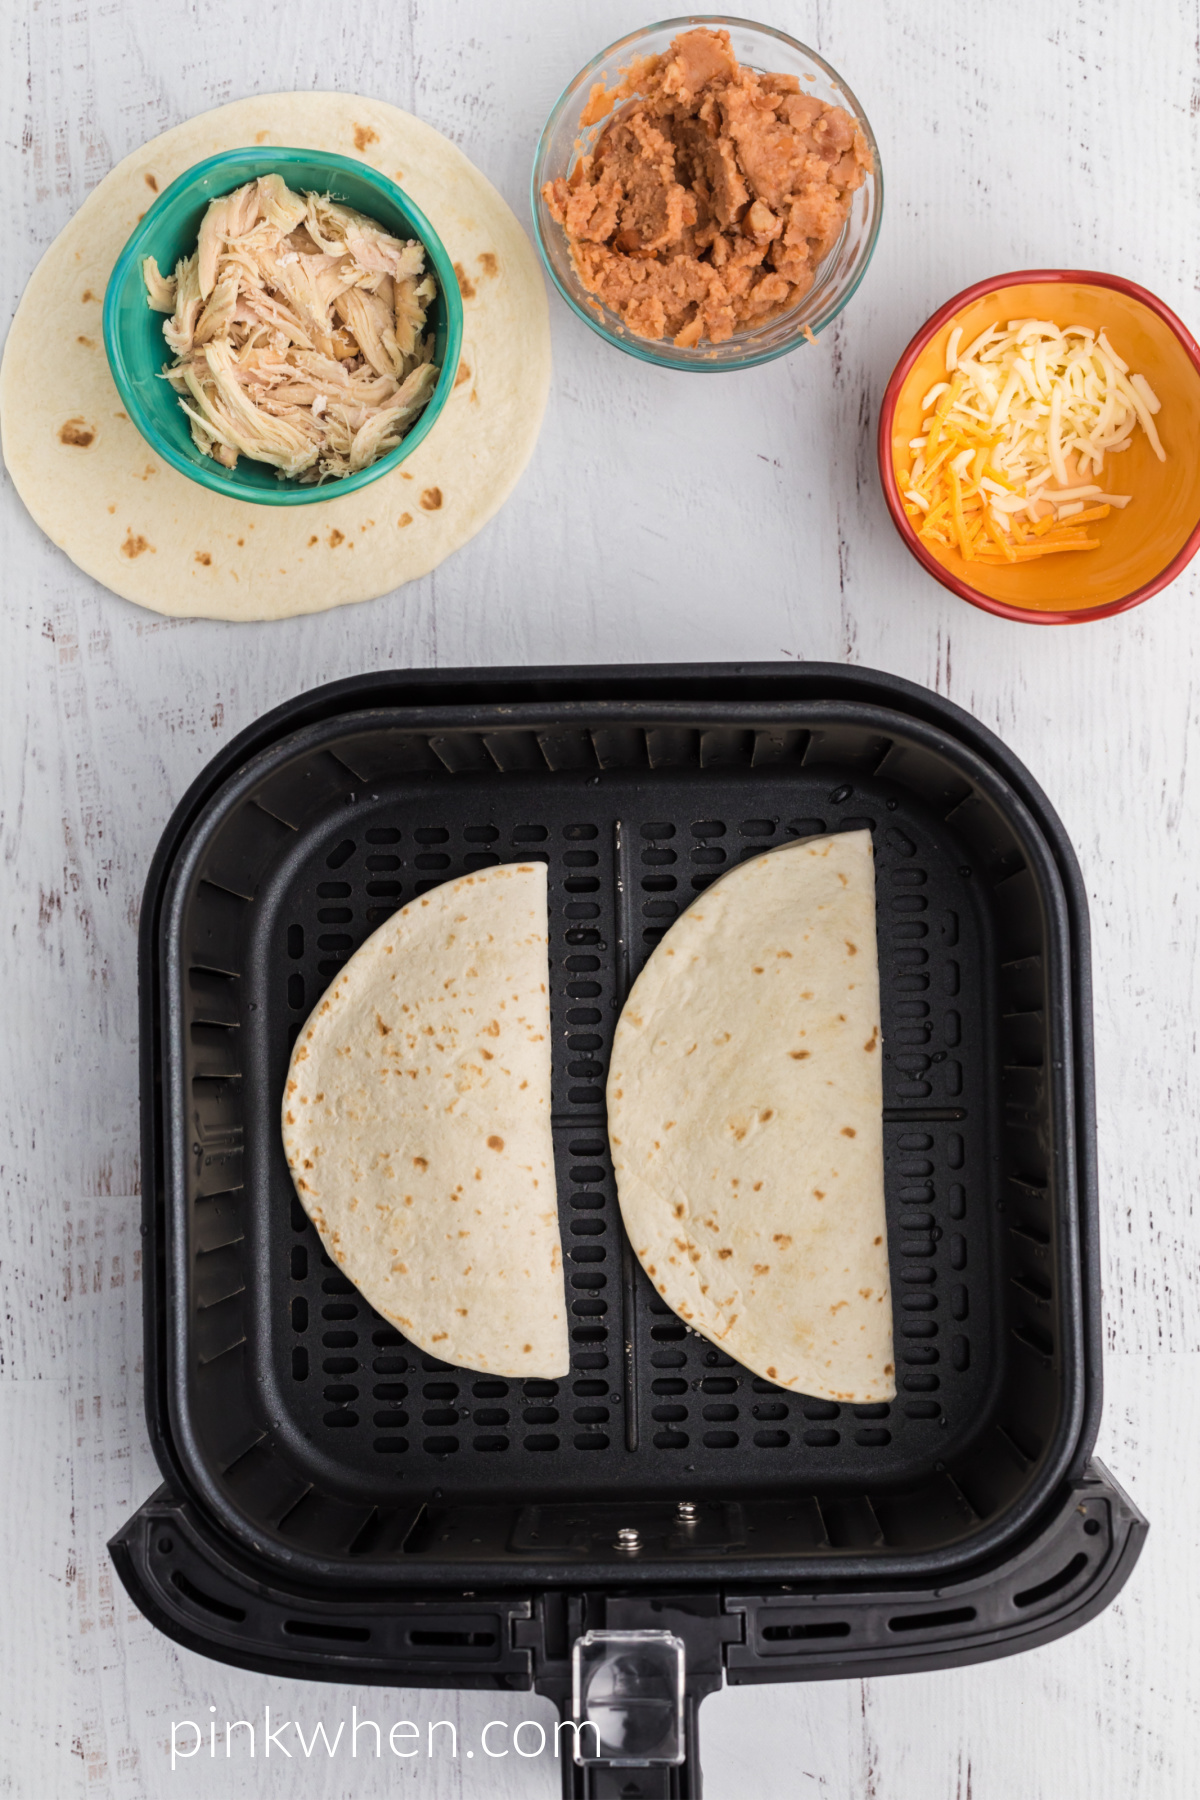 Quessadillas in the basket of the air fryer.